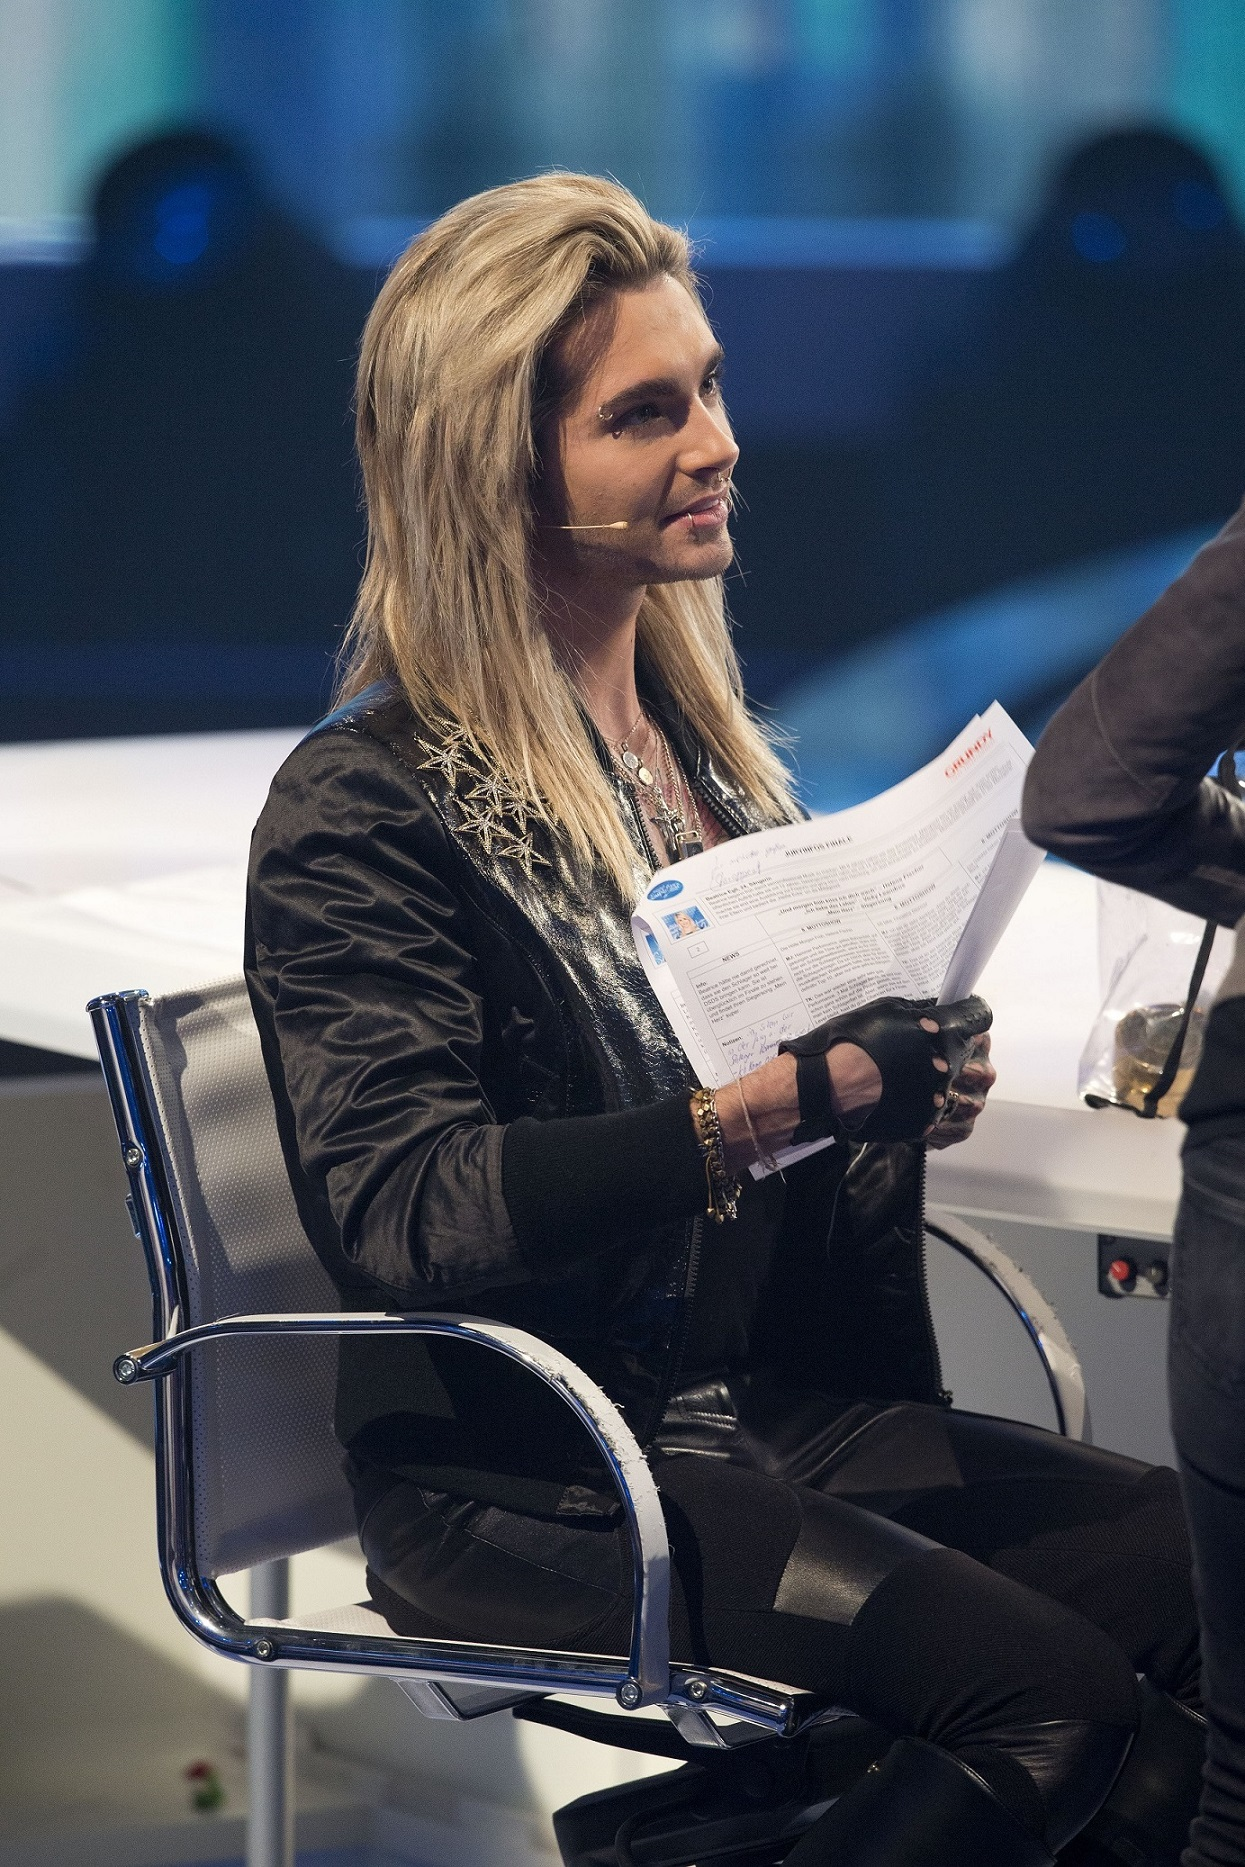 Bill Kaulitz photo #725723